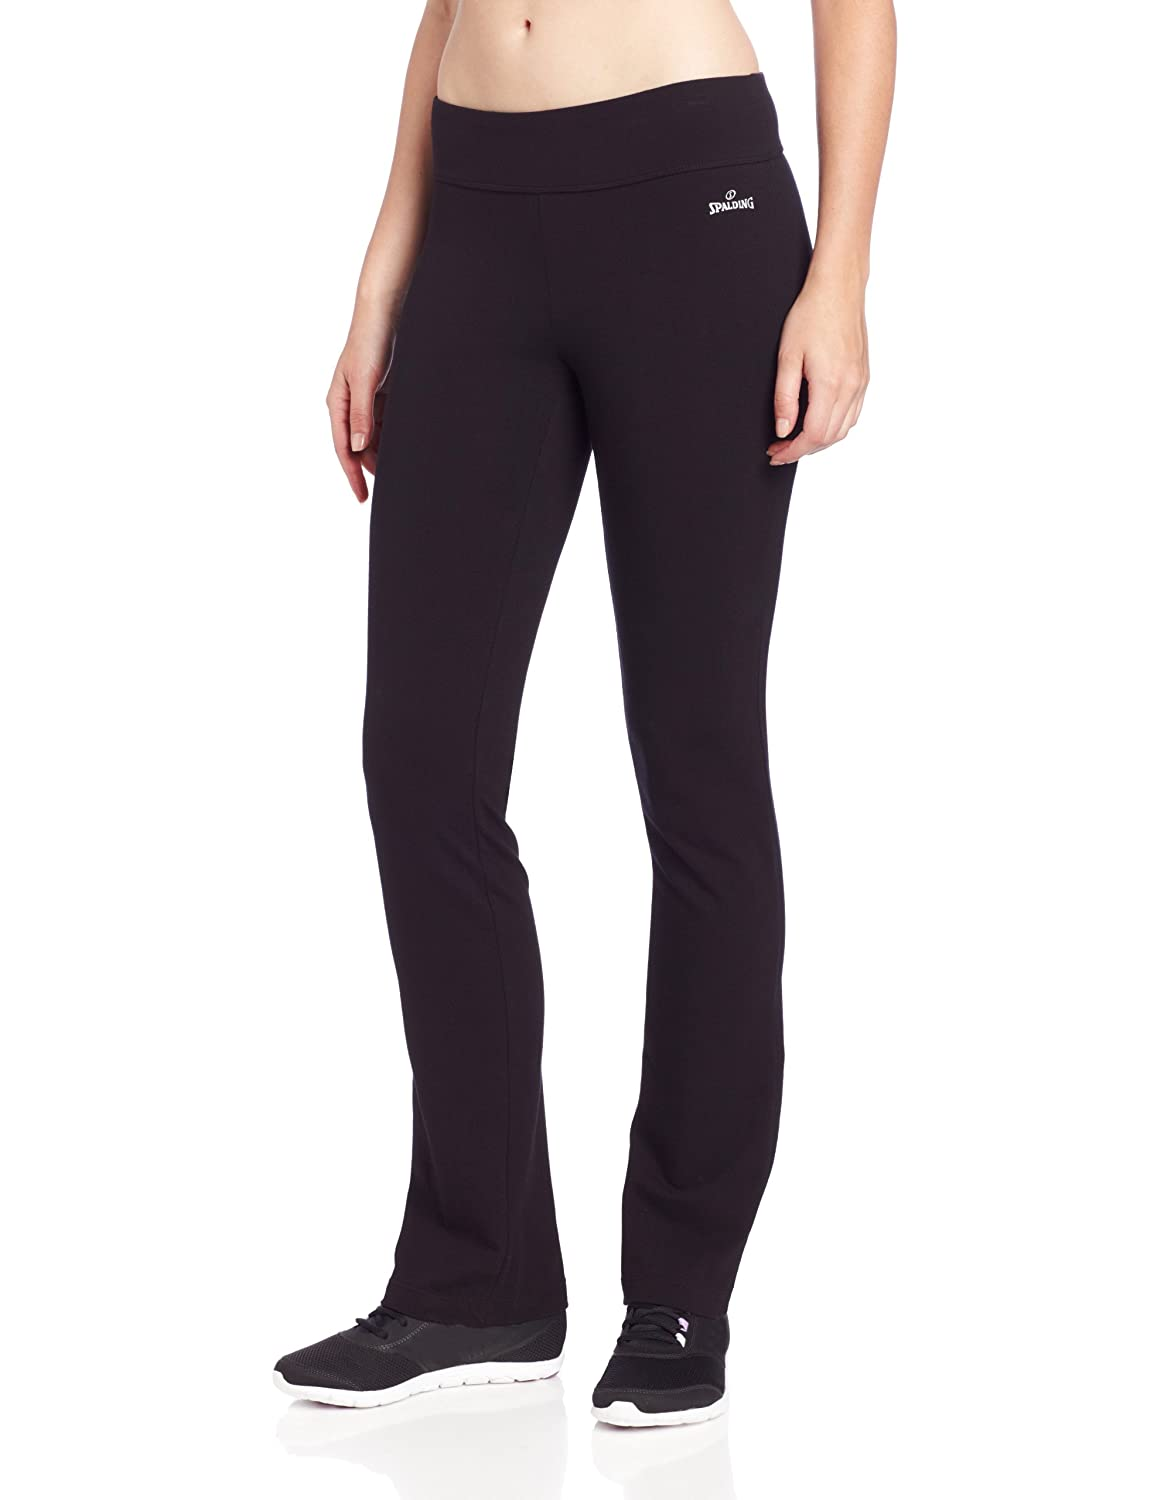 Spalding Women's Bootleg Pant, Black, Small at Amazon Women's ...